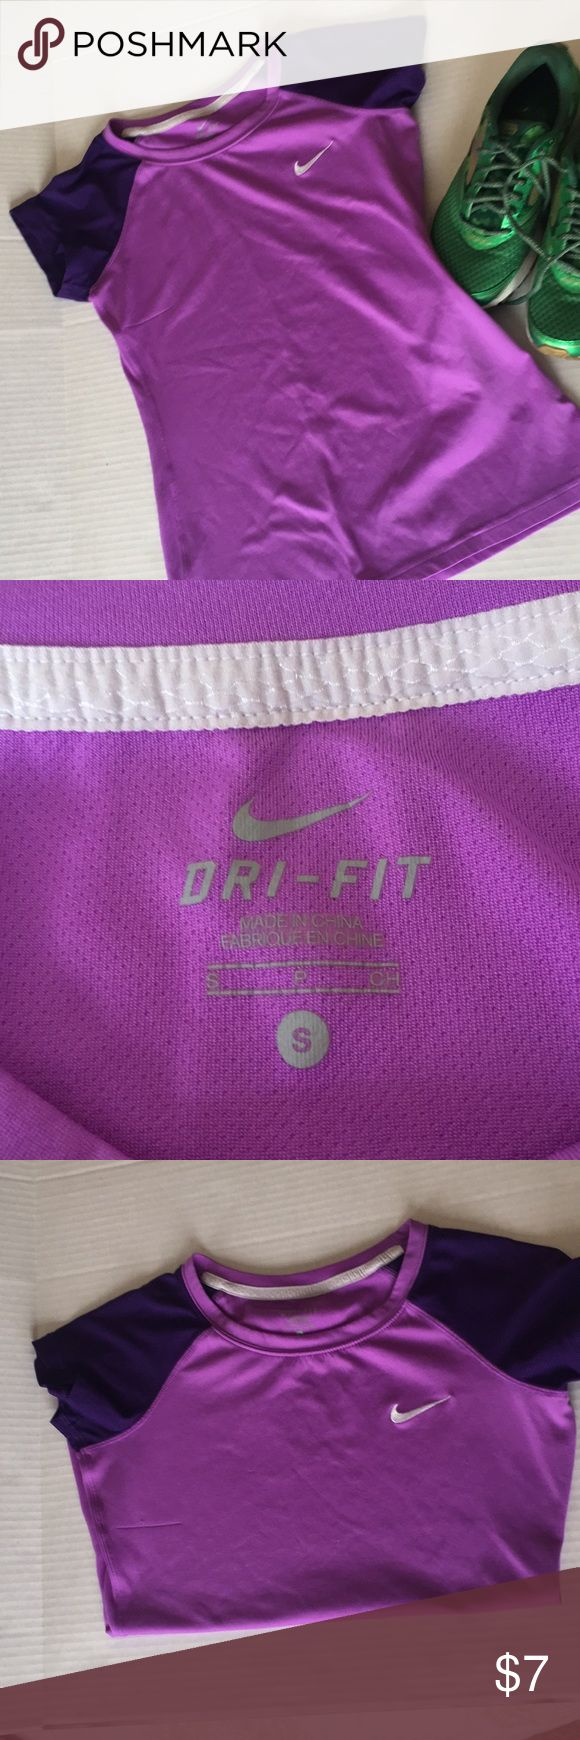 Nike dri fit short sleeve t Size small Nike dri fit shirt sleeve purple t. Mesh detail on sleeves. No rips or tears. Faint spots on front fabric. Smoke free home Nike Tops Tees - Short Sleeve